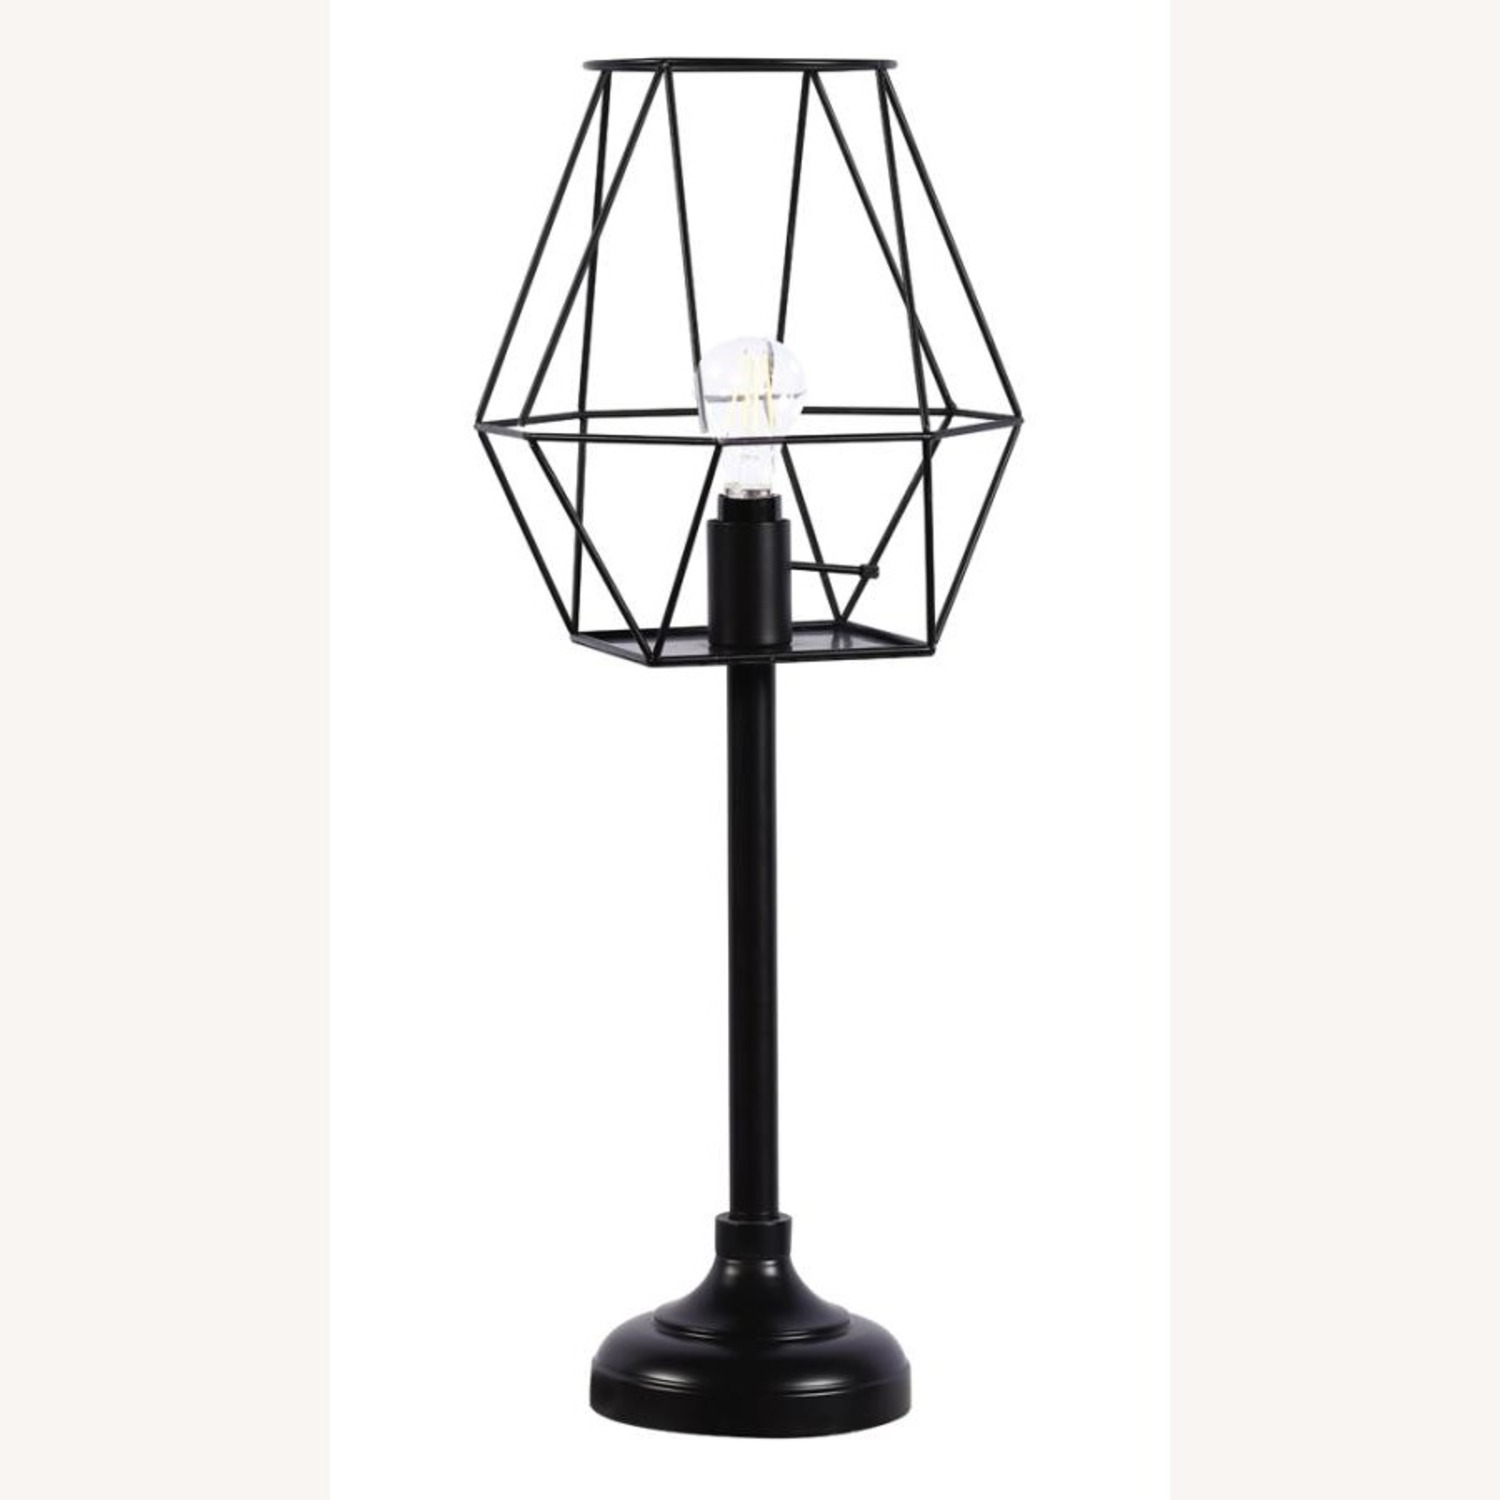 Industrial Decor Table Lamp In Black Metal Finish - image-0